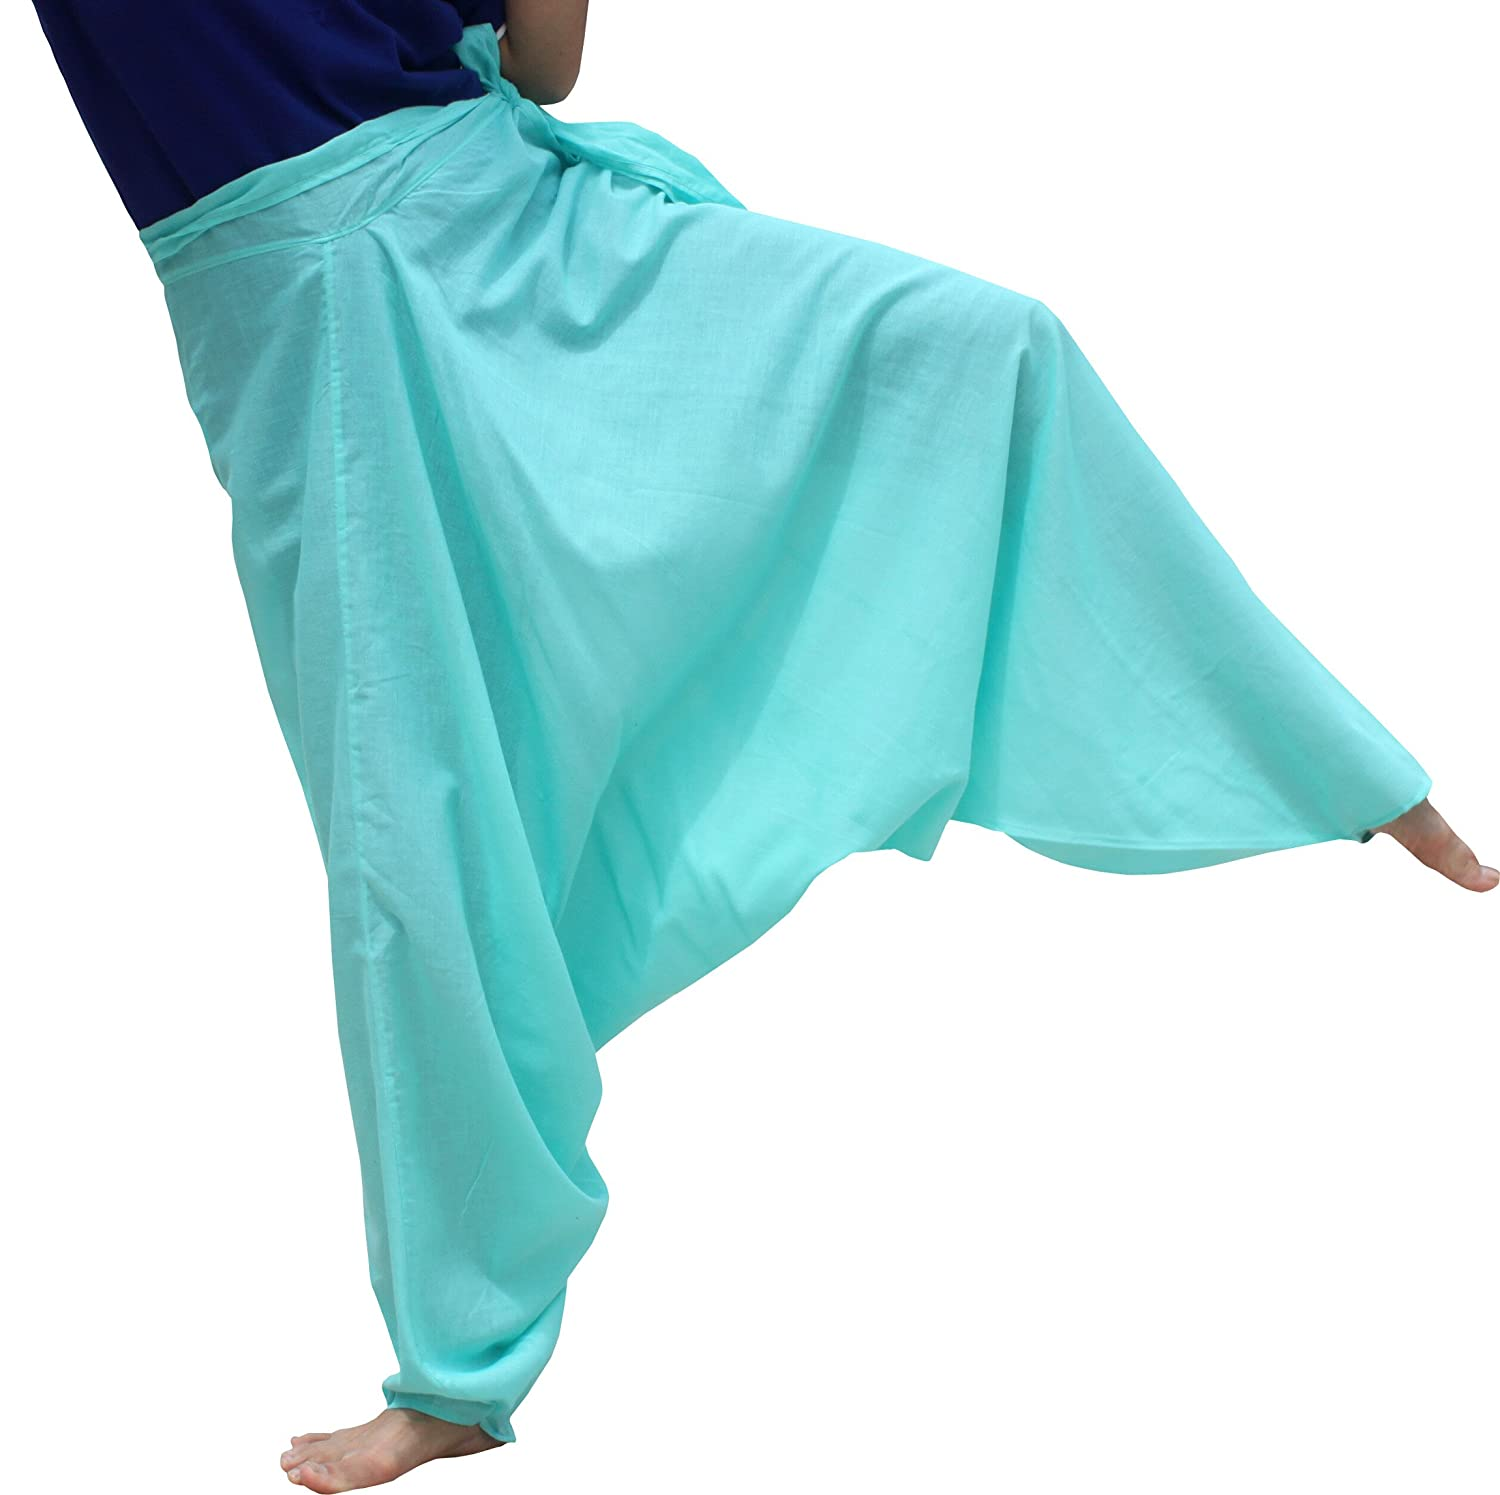 Saloo Cotton  Teal Green Medium Raan Pah Muang Mixed Cotton Mao Hill Tribe Pants Side Tie